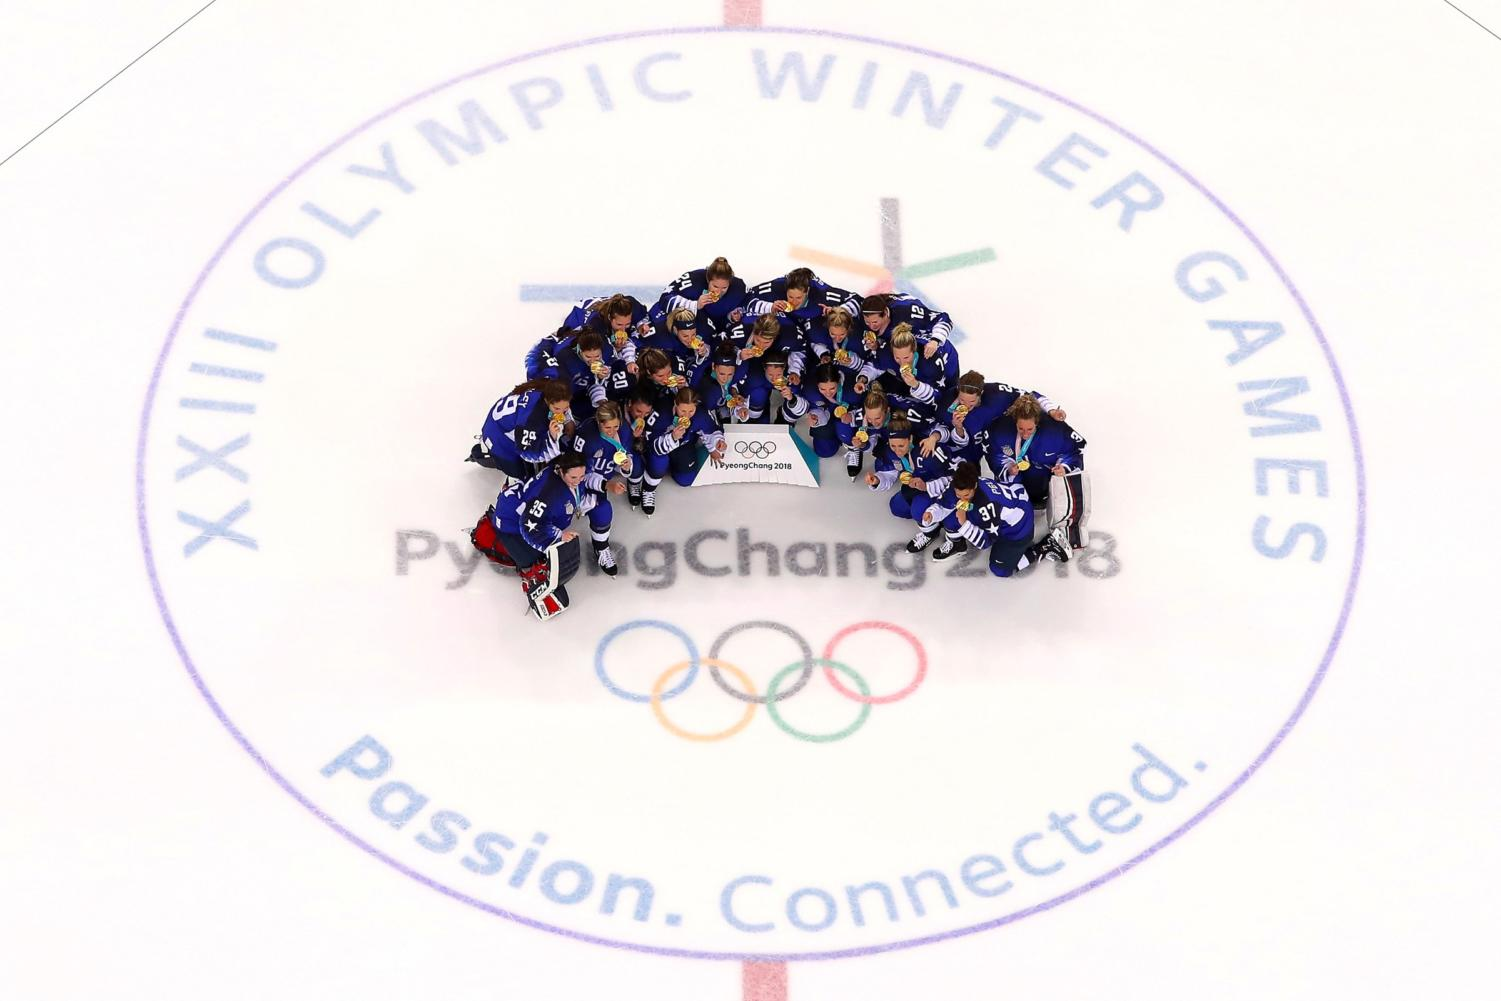 Team United States of America (gold) poses after defeating Team Canada (silver) 3-2 in the Women's Ice Hockey Gold Medal game on day 13 of the PyeongChang 2018 Winter Olympic Games at Kwandong Hockey Centre on February 22, 2018 in Gangneung, Republic of Korea. GettyImages